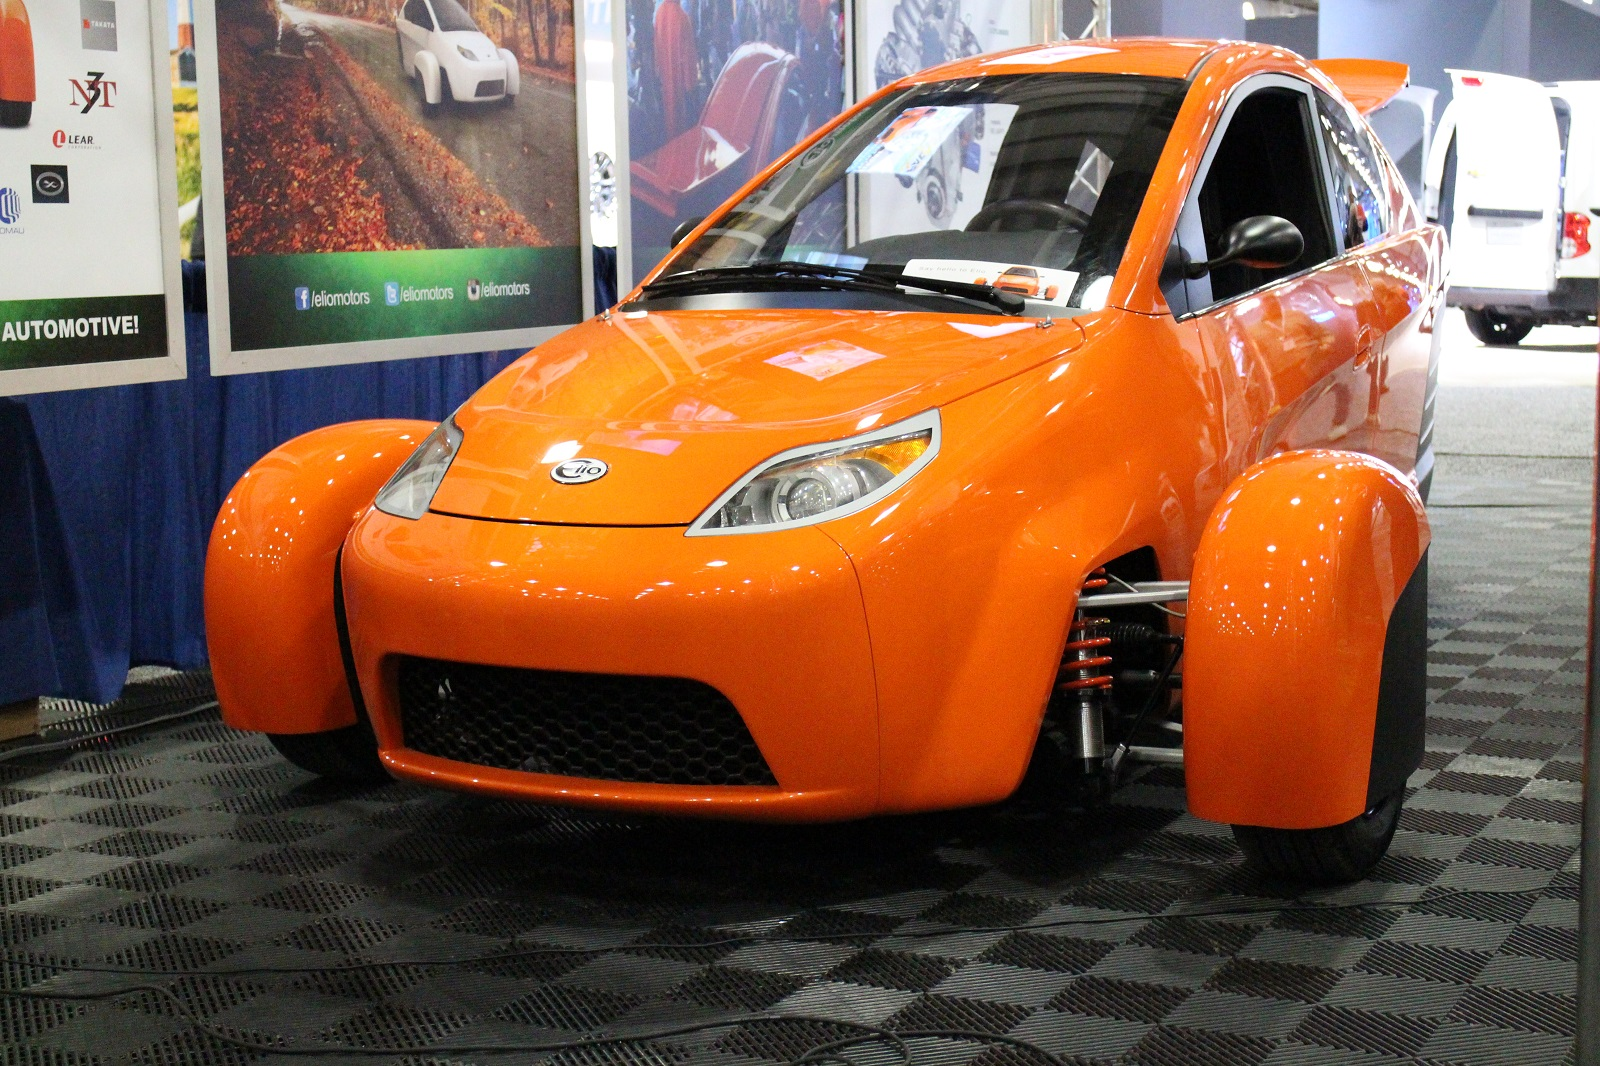 Elio To 100 Million In Stock 3 Wheeler Price Raised Production Delayed Again Updated